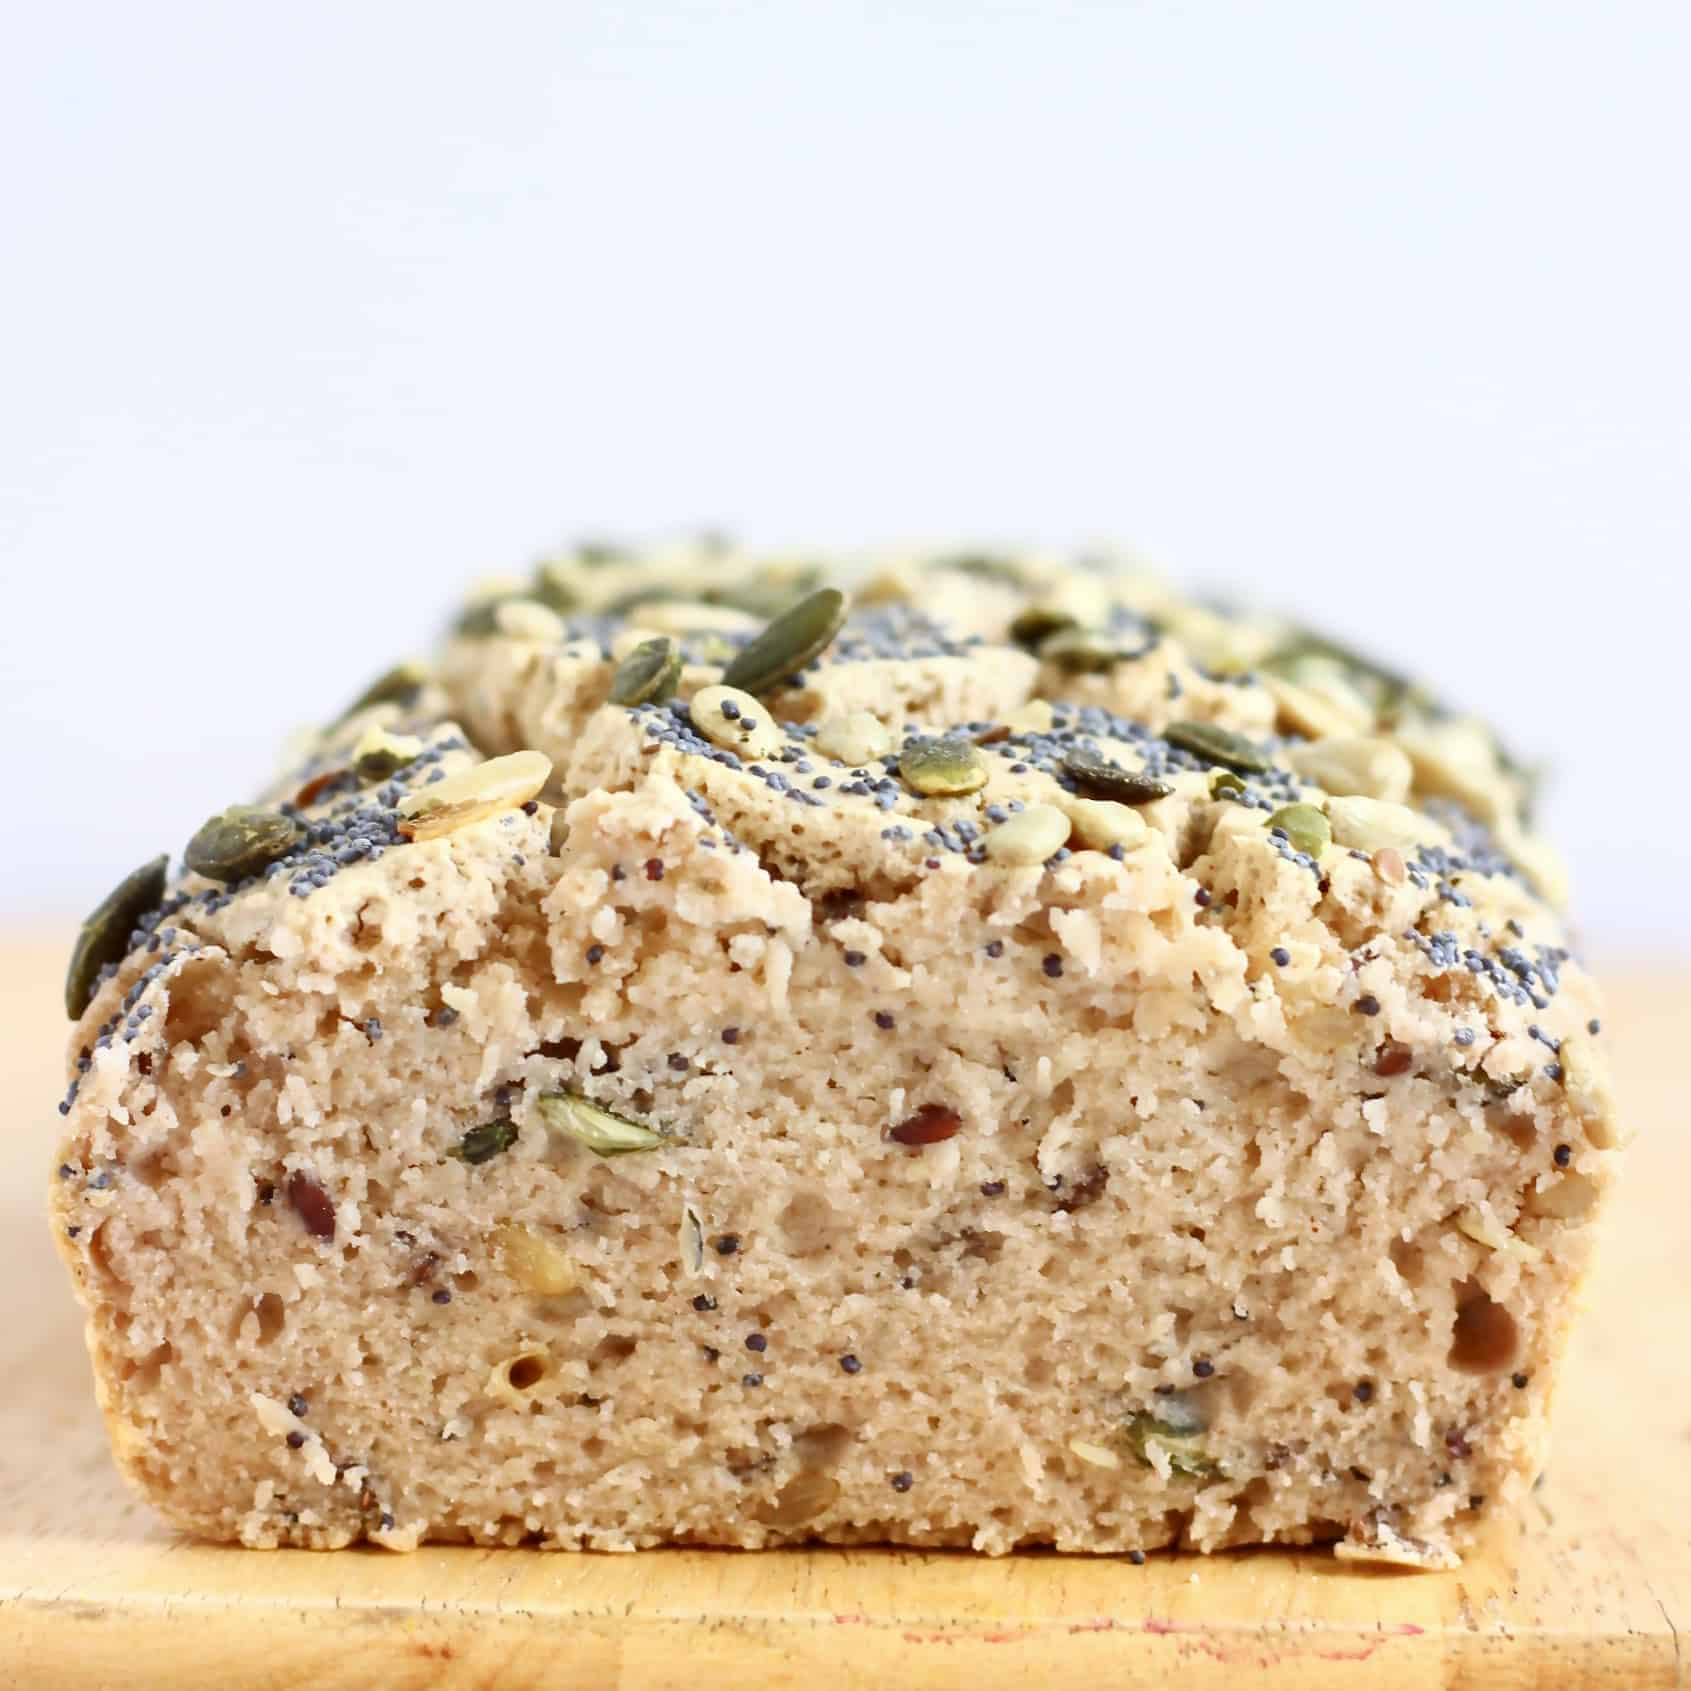 A sliced loaf of Gluten-Free Vegan Seeded Buckwheat Bread on a chopping board